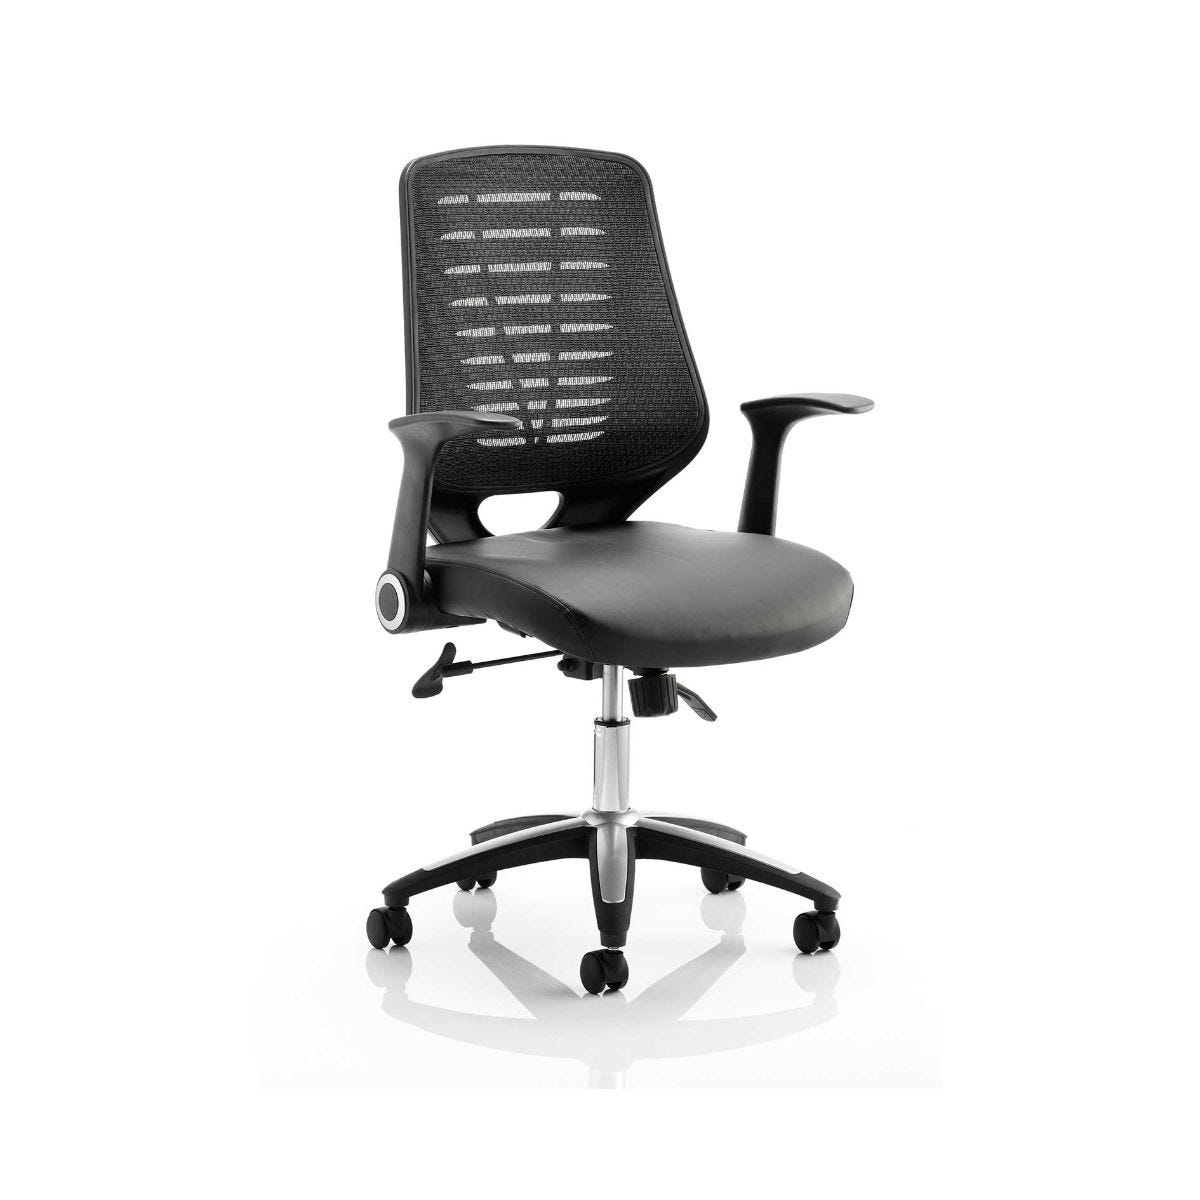 Relay Operator Office Chair Black Leather, Black